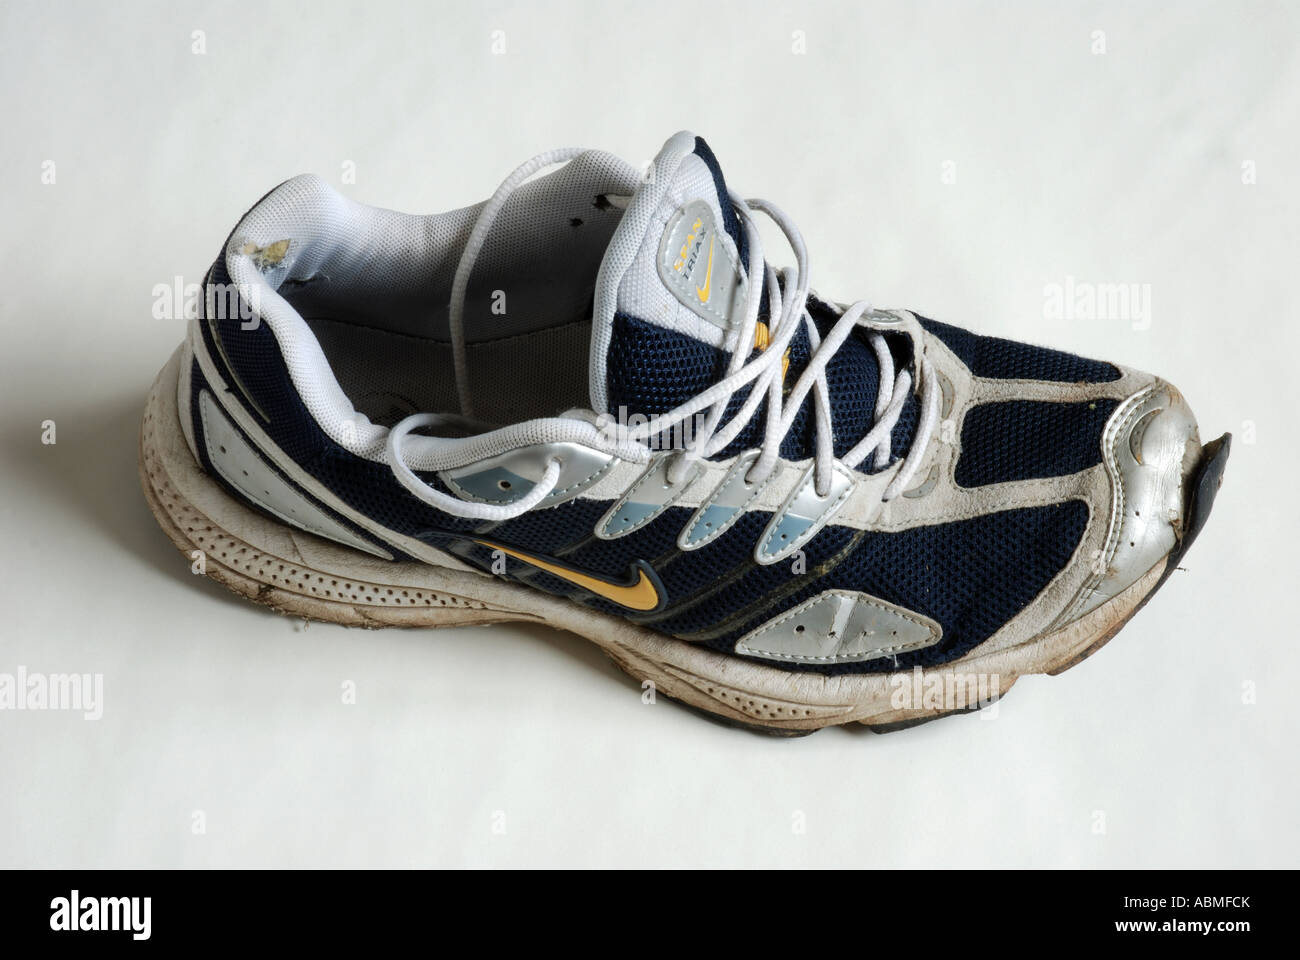 An old Nike running shoe Stock Photo  12925506 - Alamy 71ba66ac20db